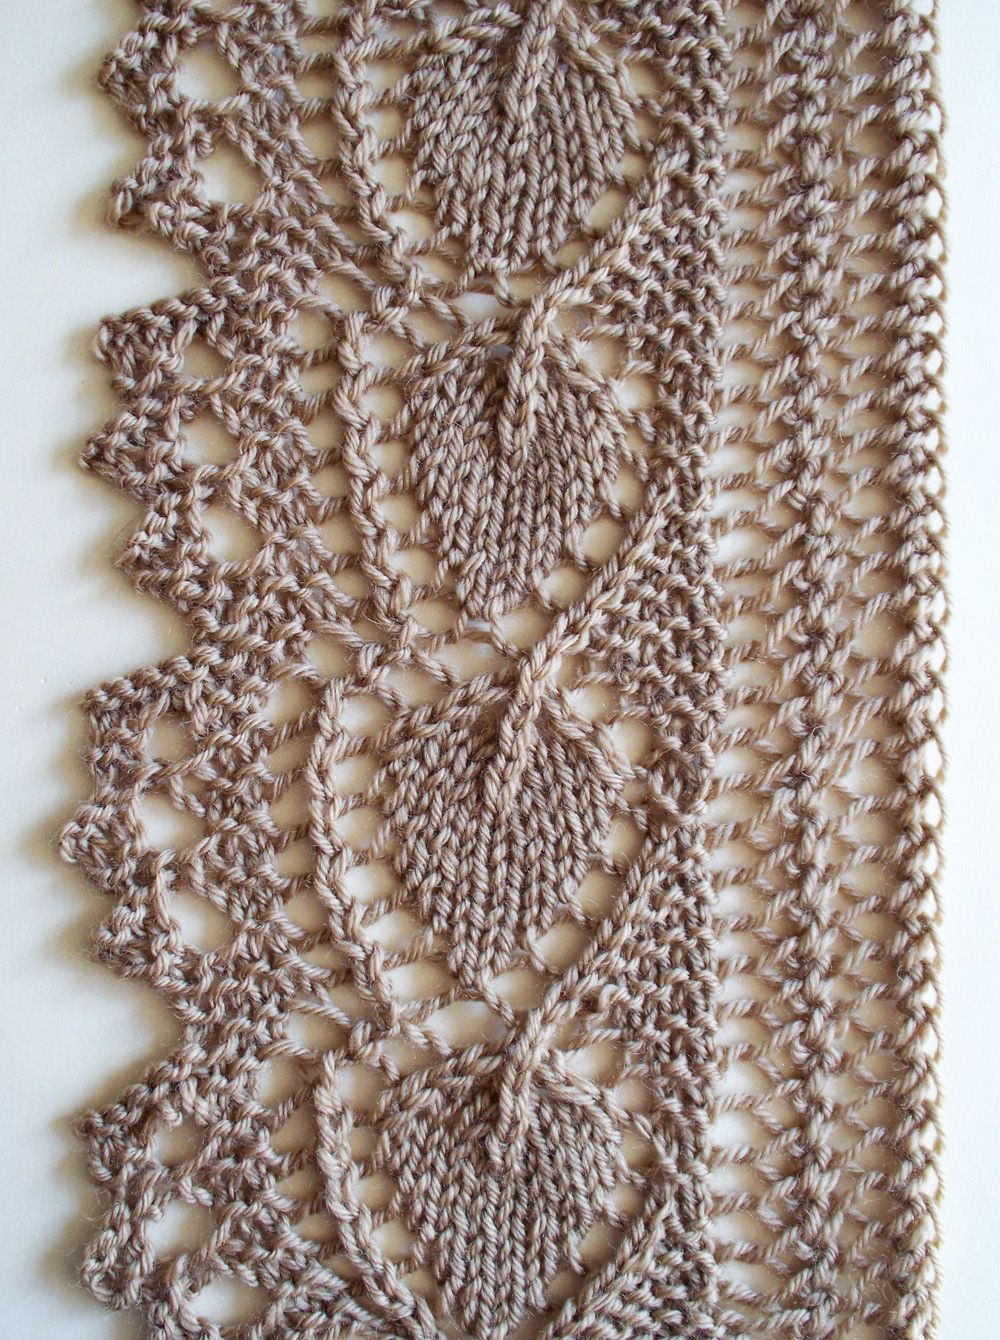 Click for full screen display diy knitting 3 pinterest click for full screen display leaf knitting patternlace bankloansurffo Gallery